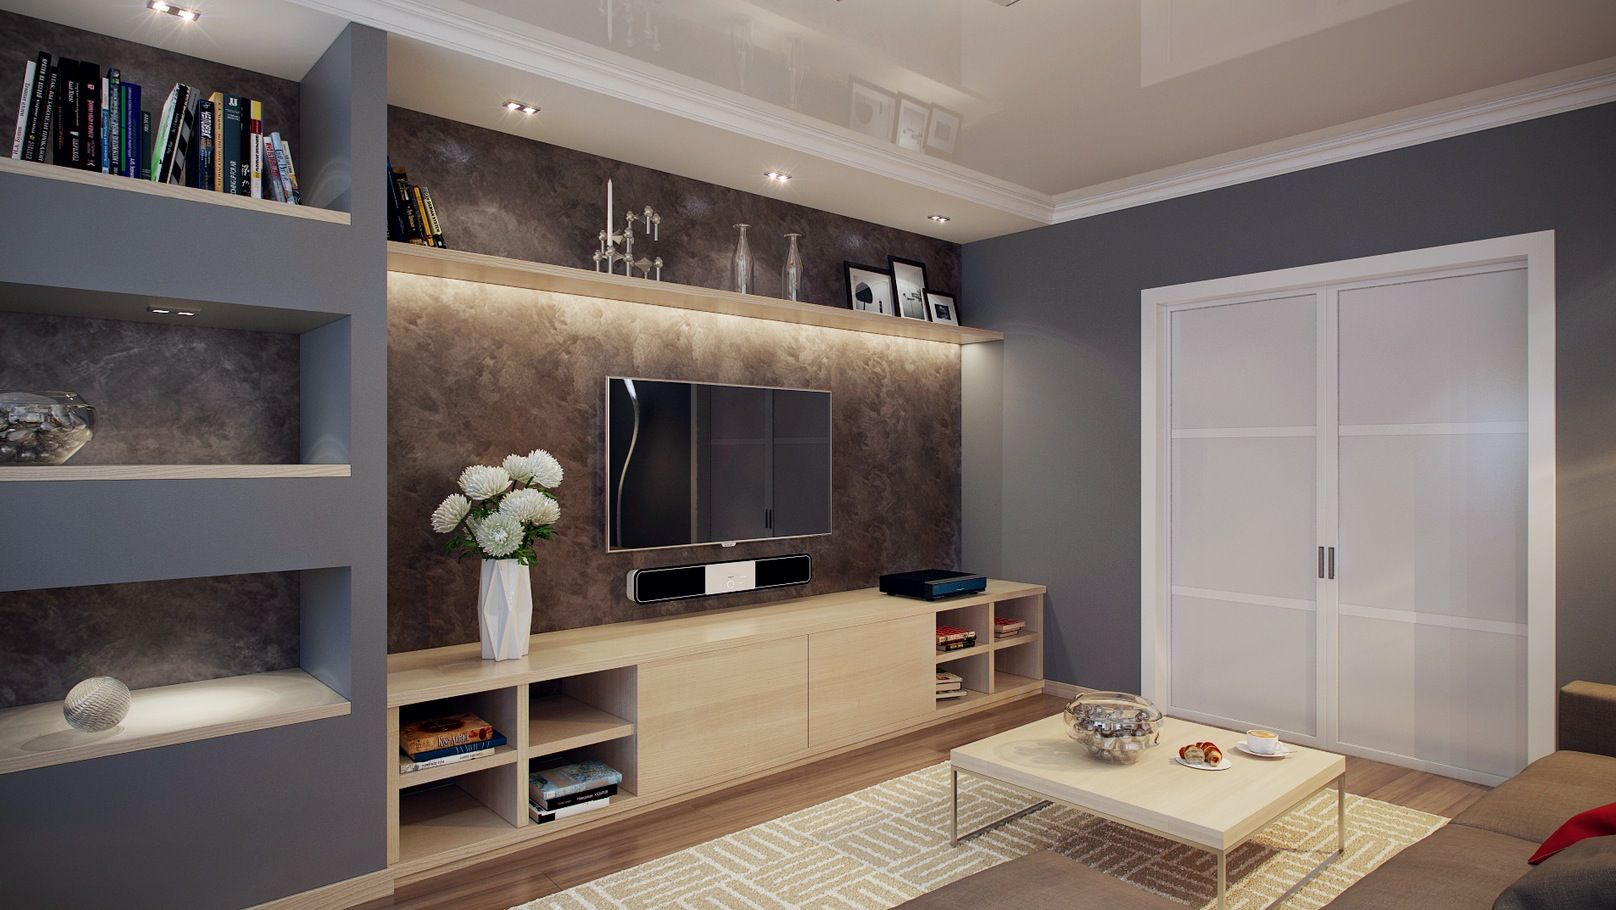 Built in Wall Unit Designs | modern built in wall shelving ...